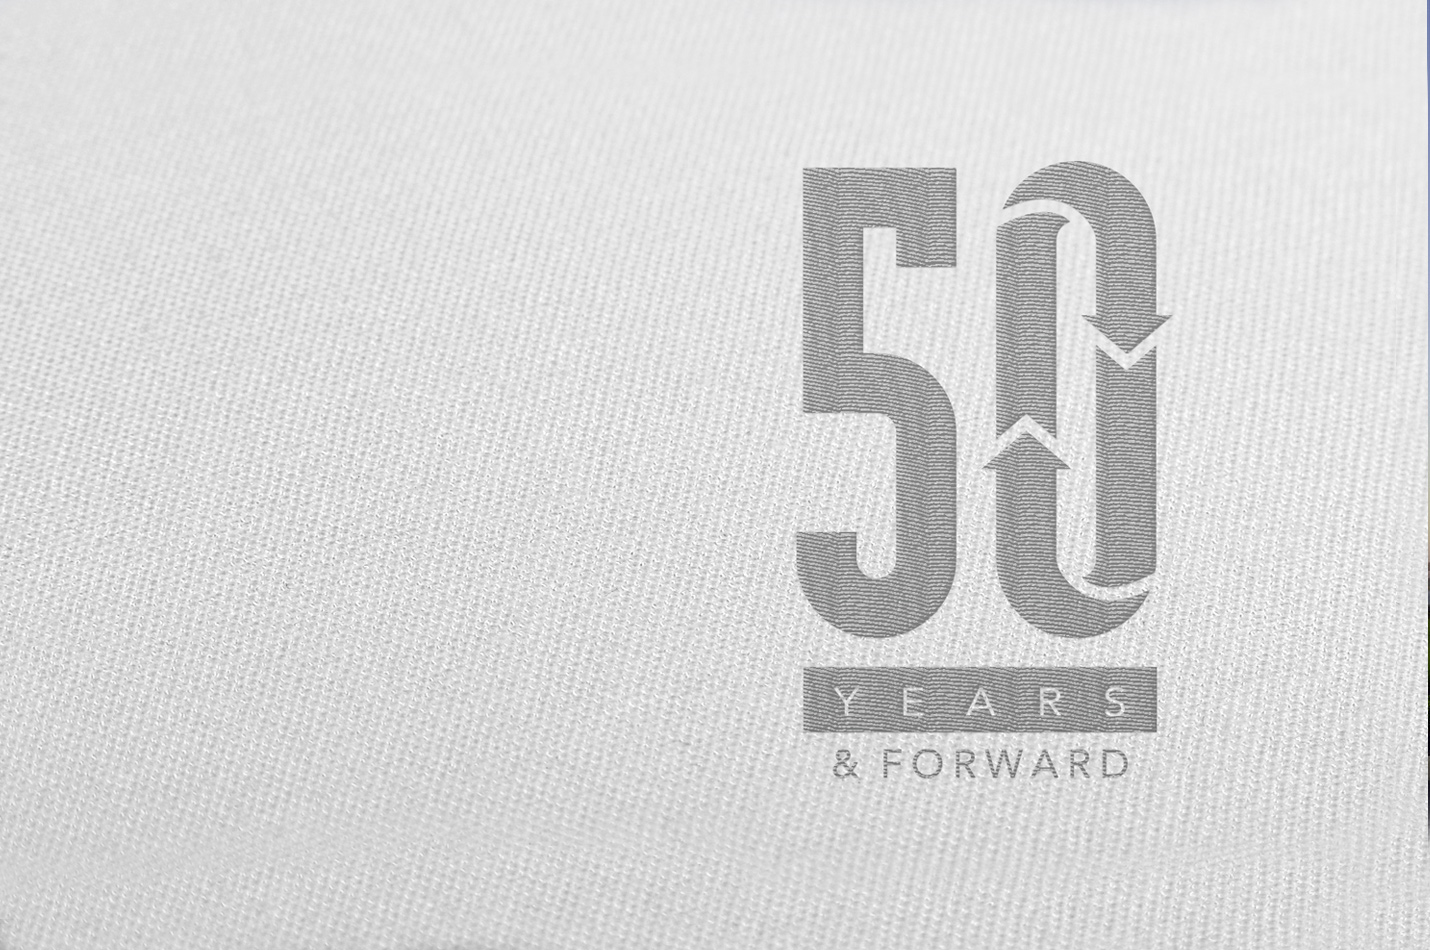 50 years and forward